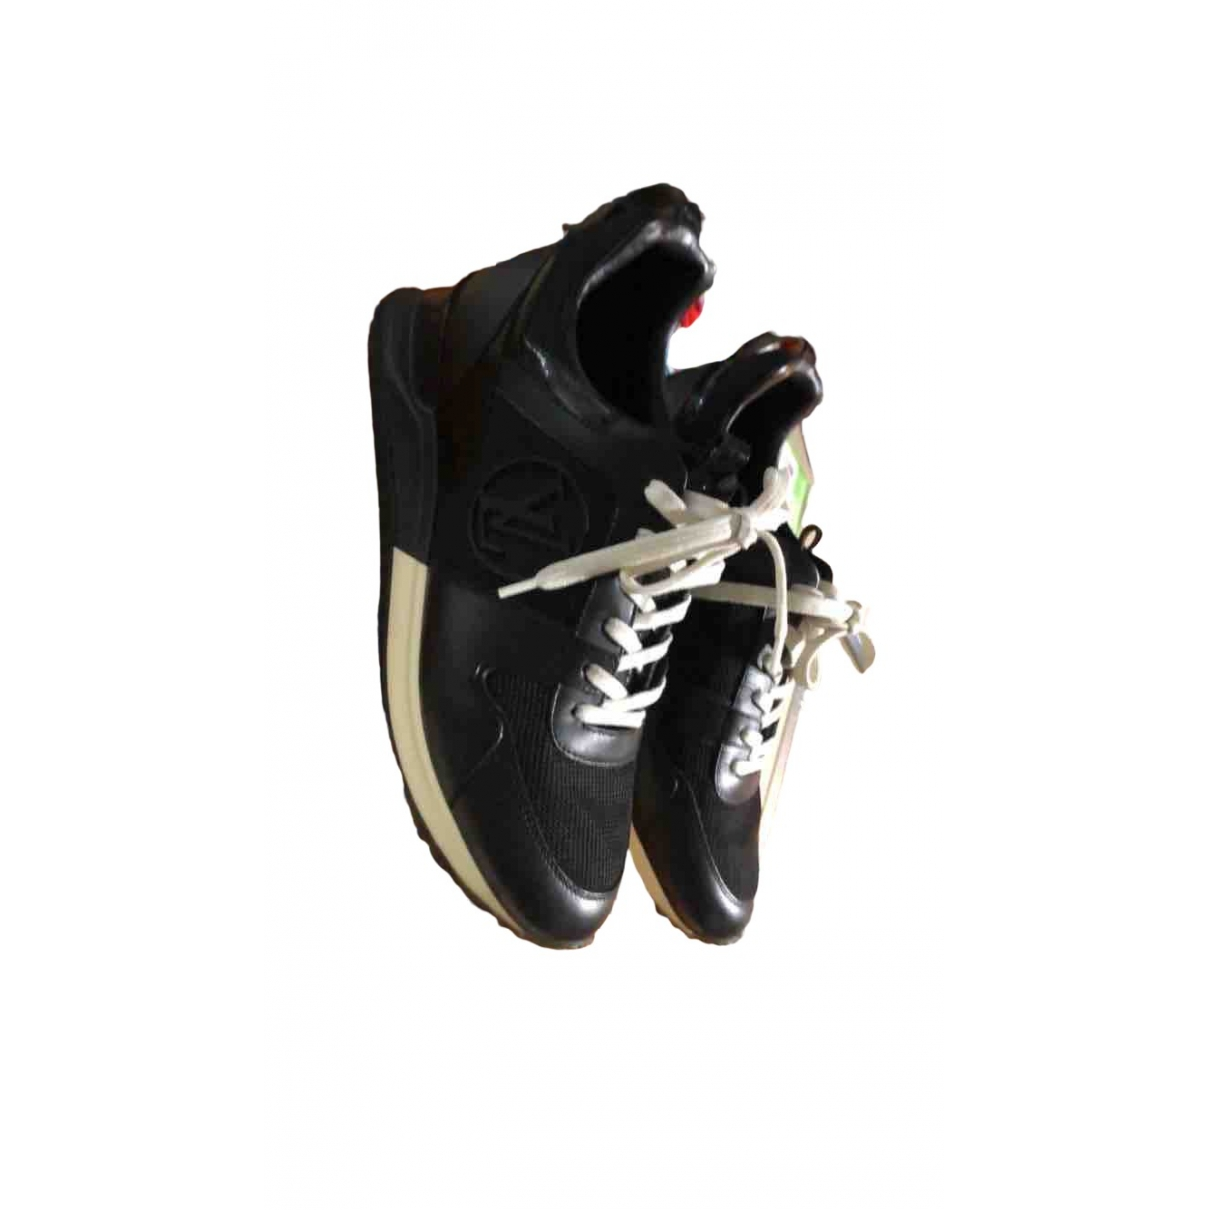 Louis Vuitton Run Away Black Leather Trainers for Women 36.5 EU